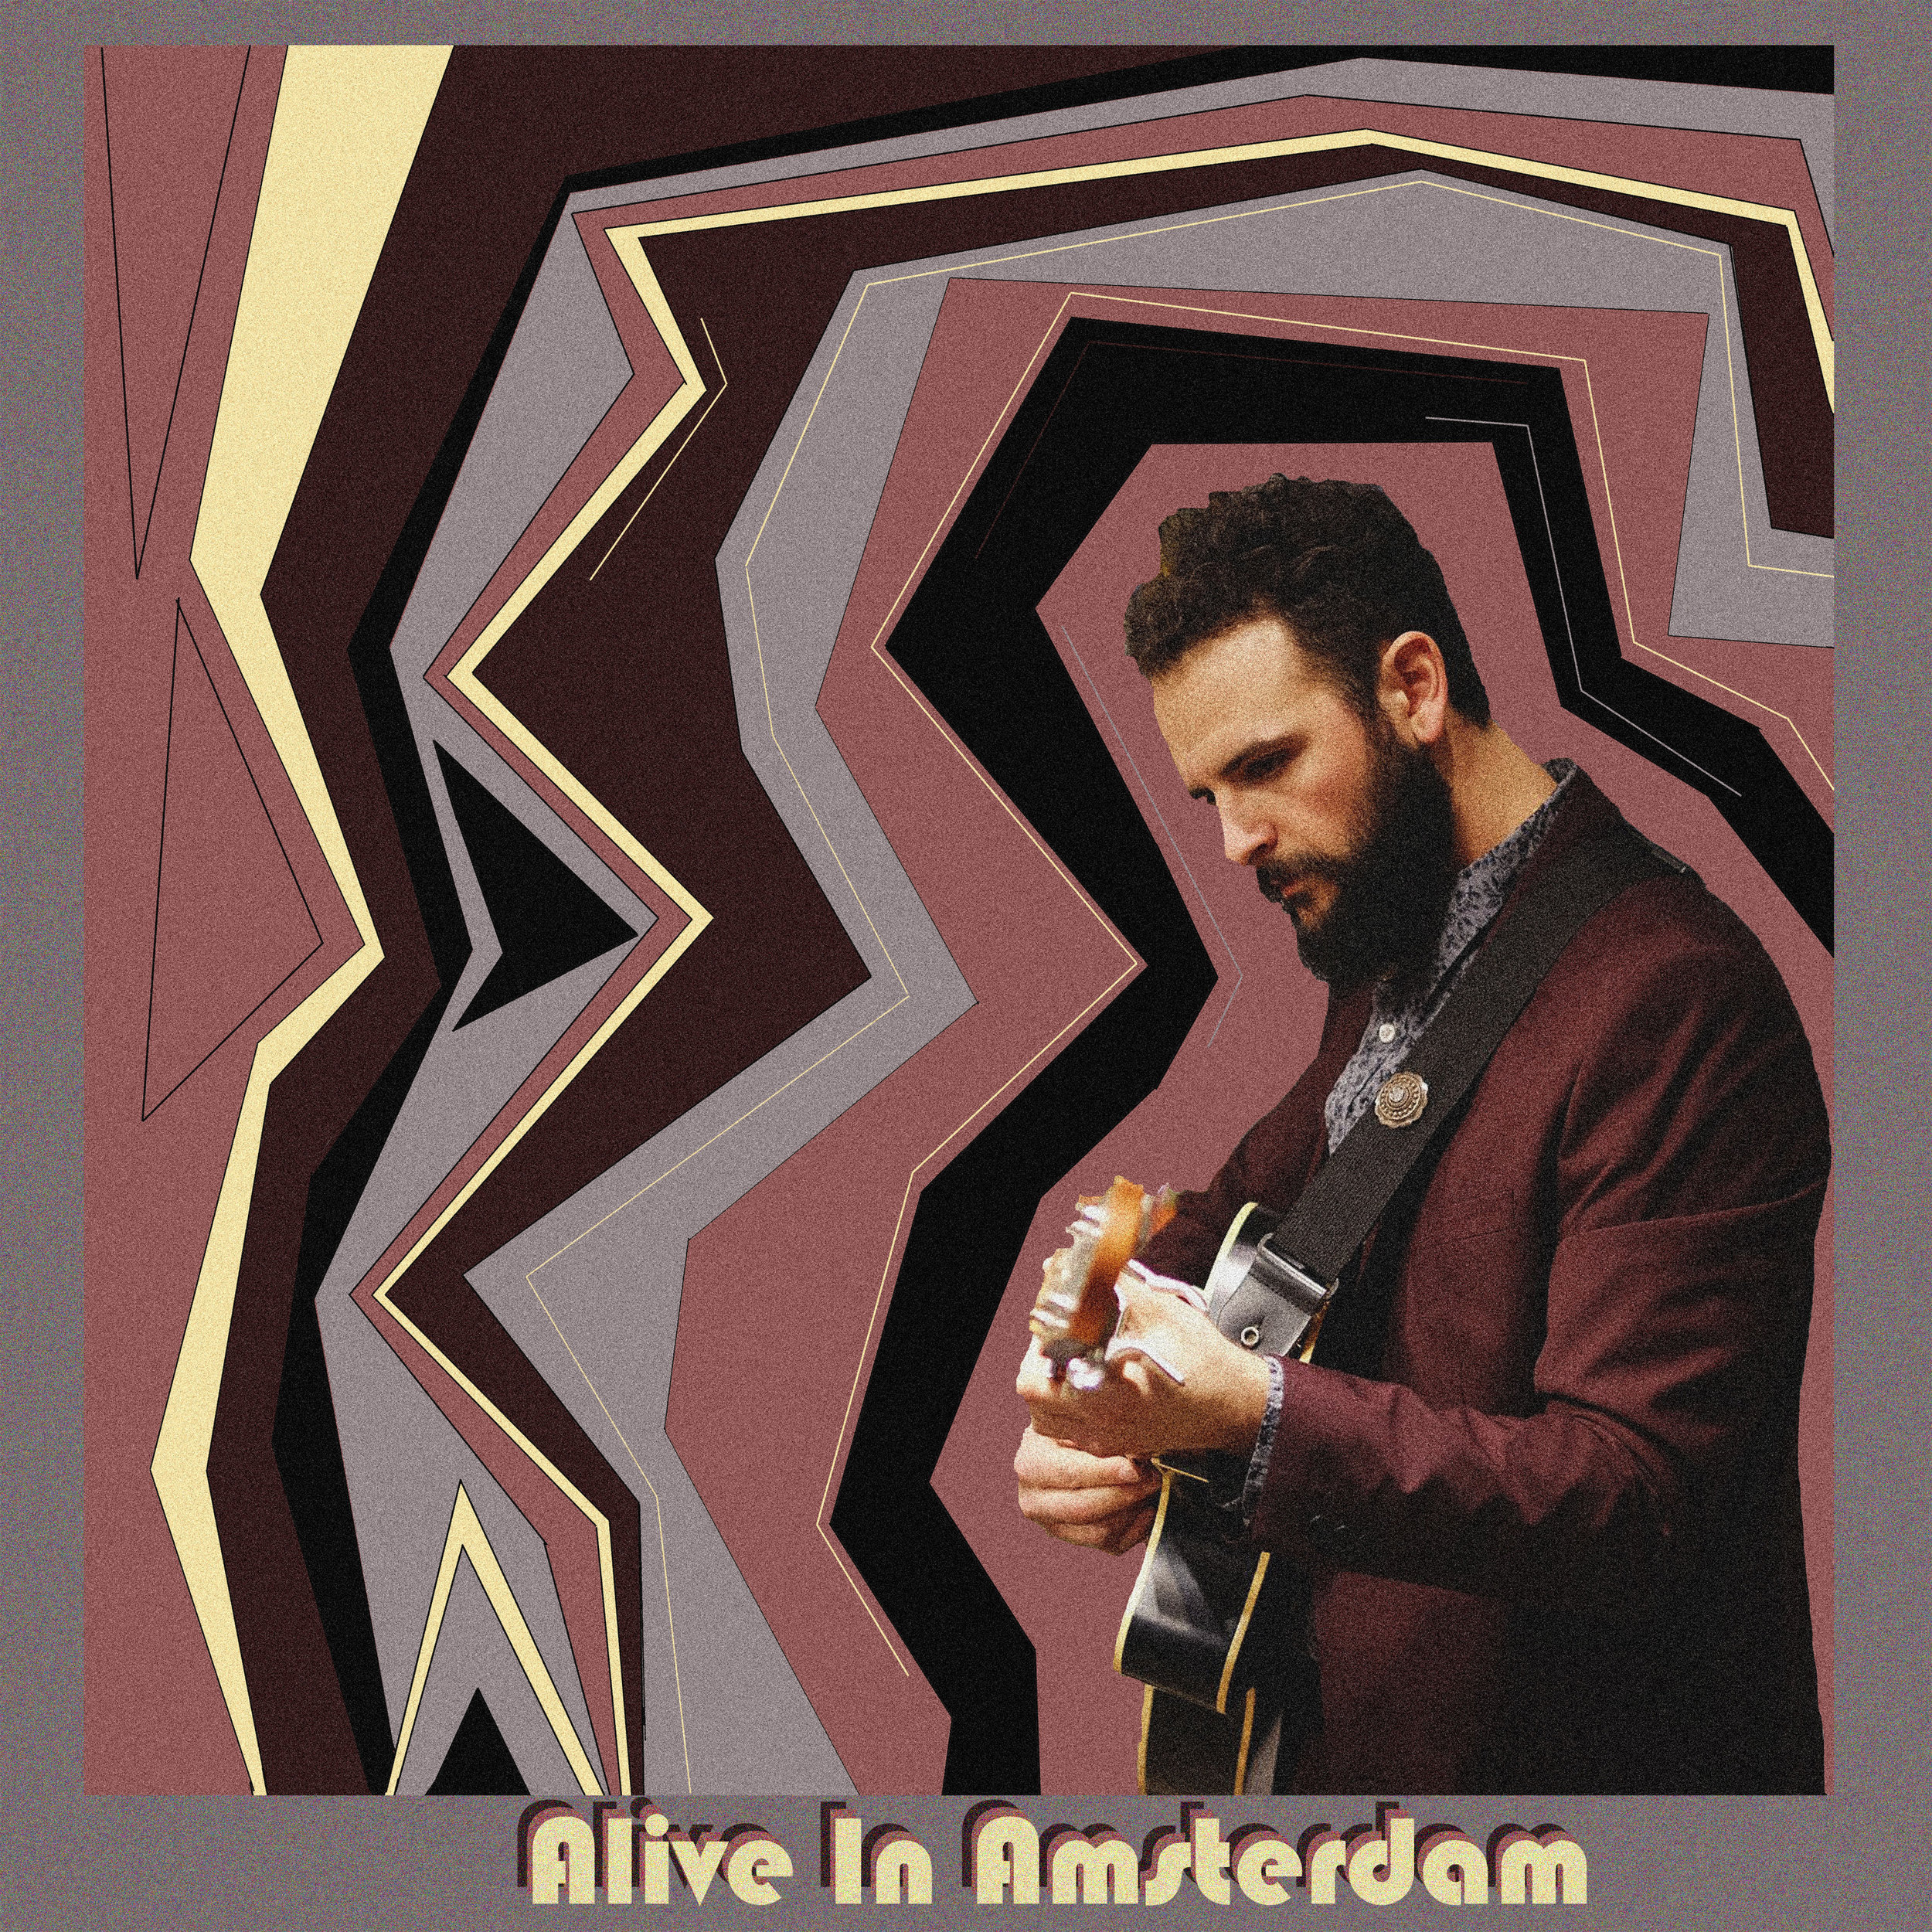 "Comprised of material recorded live in 4 cities (Amsterdam, Breda, Gothenburg and Hamburg) during a 2018 Scandinavian Tour, ""Alive in Europe"" captures Whitebrow's Gabriel DeSantis in a stripped down and unbridled solo performance.  Spotify -  https://open.spotify.com/album/7ePsXQz9VhQqzHVzfYeGJh   Apple Music -  https://itunes.apple.com/ca/album/alive-in-amsterdam/1434778380"